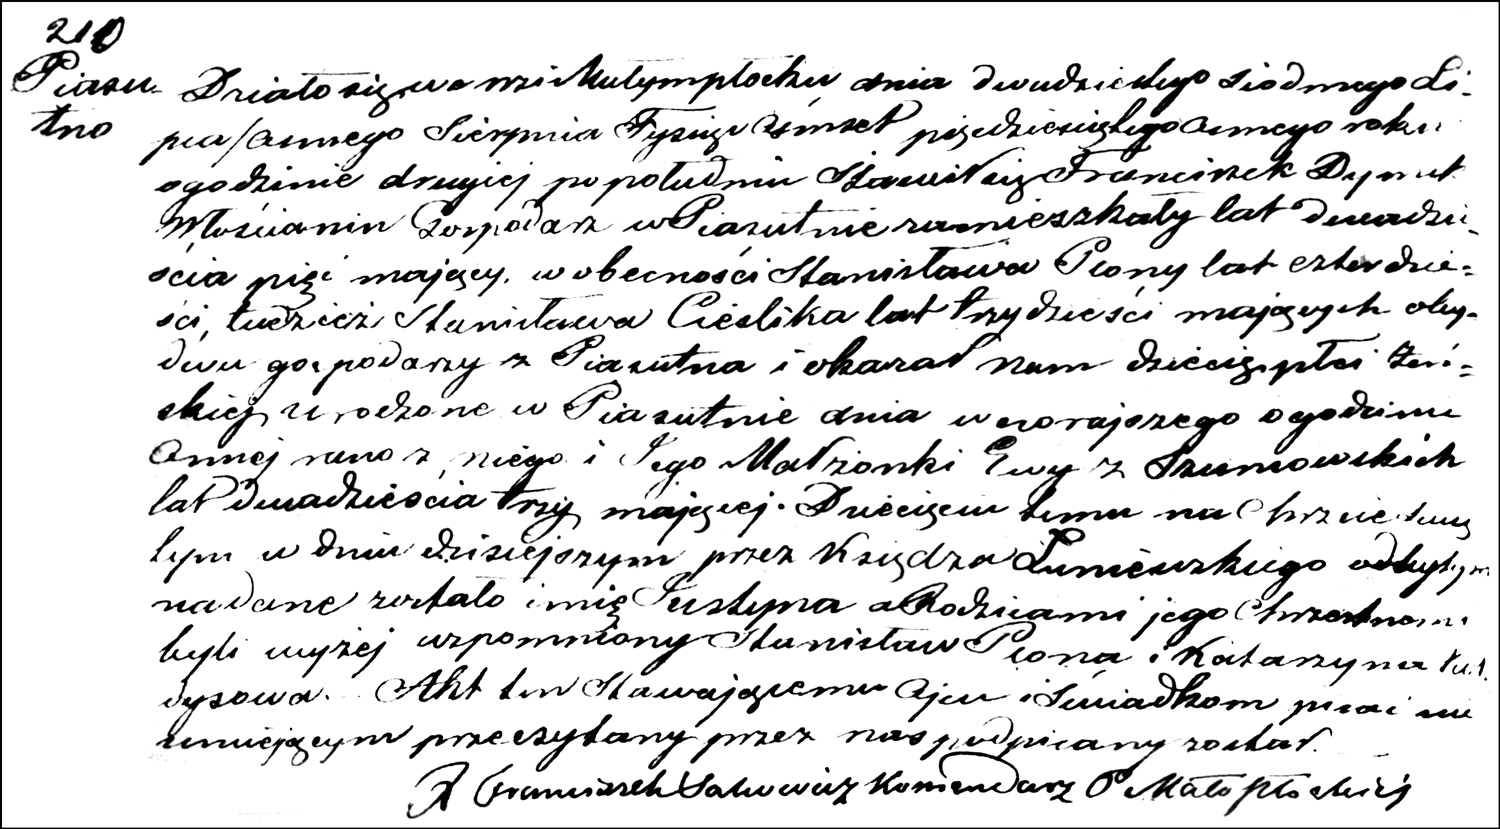 The Birth and Baptismal Record of Justyna Dymek – 1858